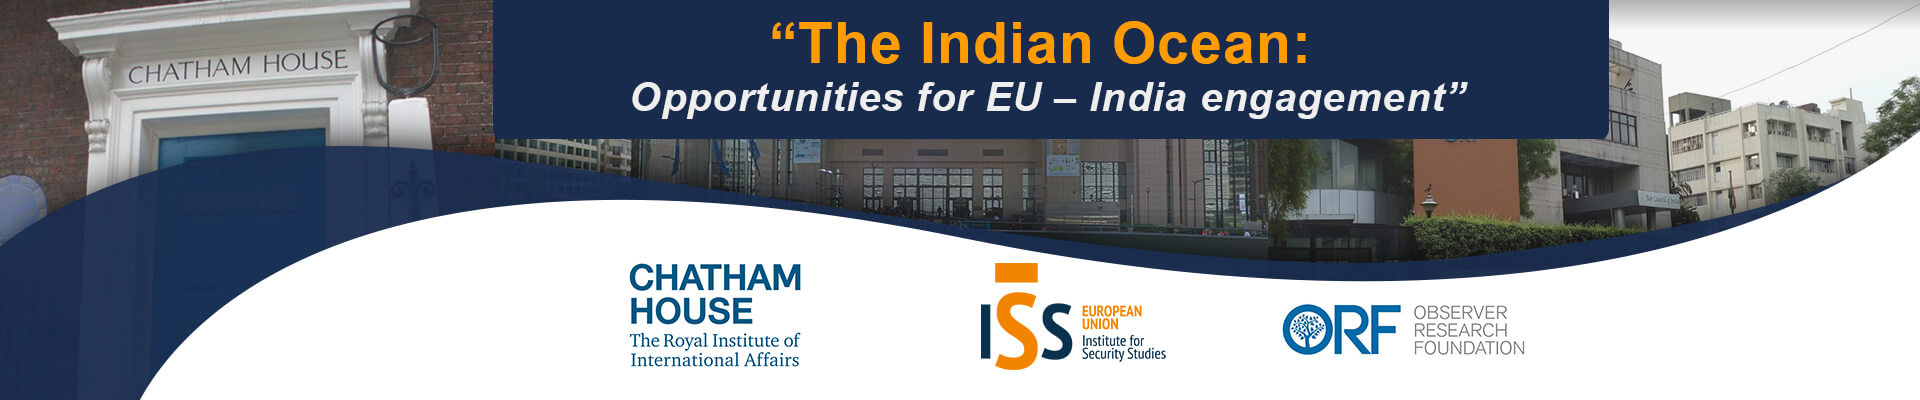 The Indian Ocean – Opportunities for EU India engagement